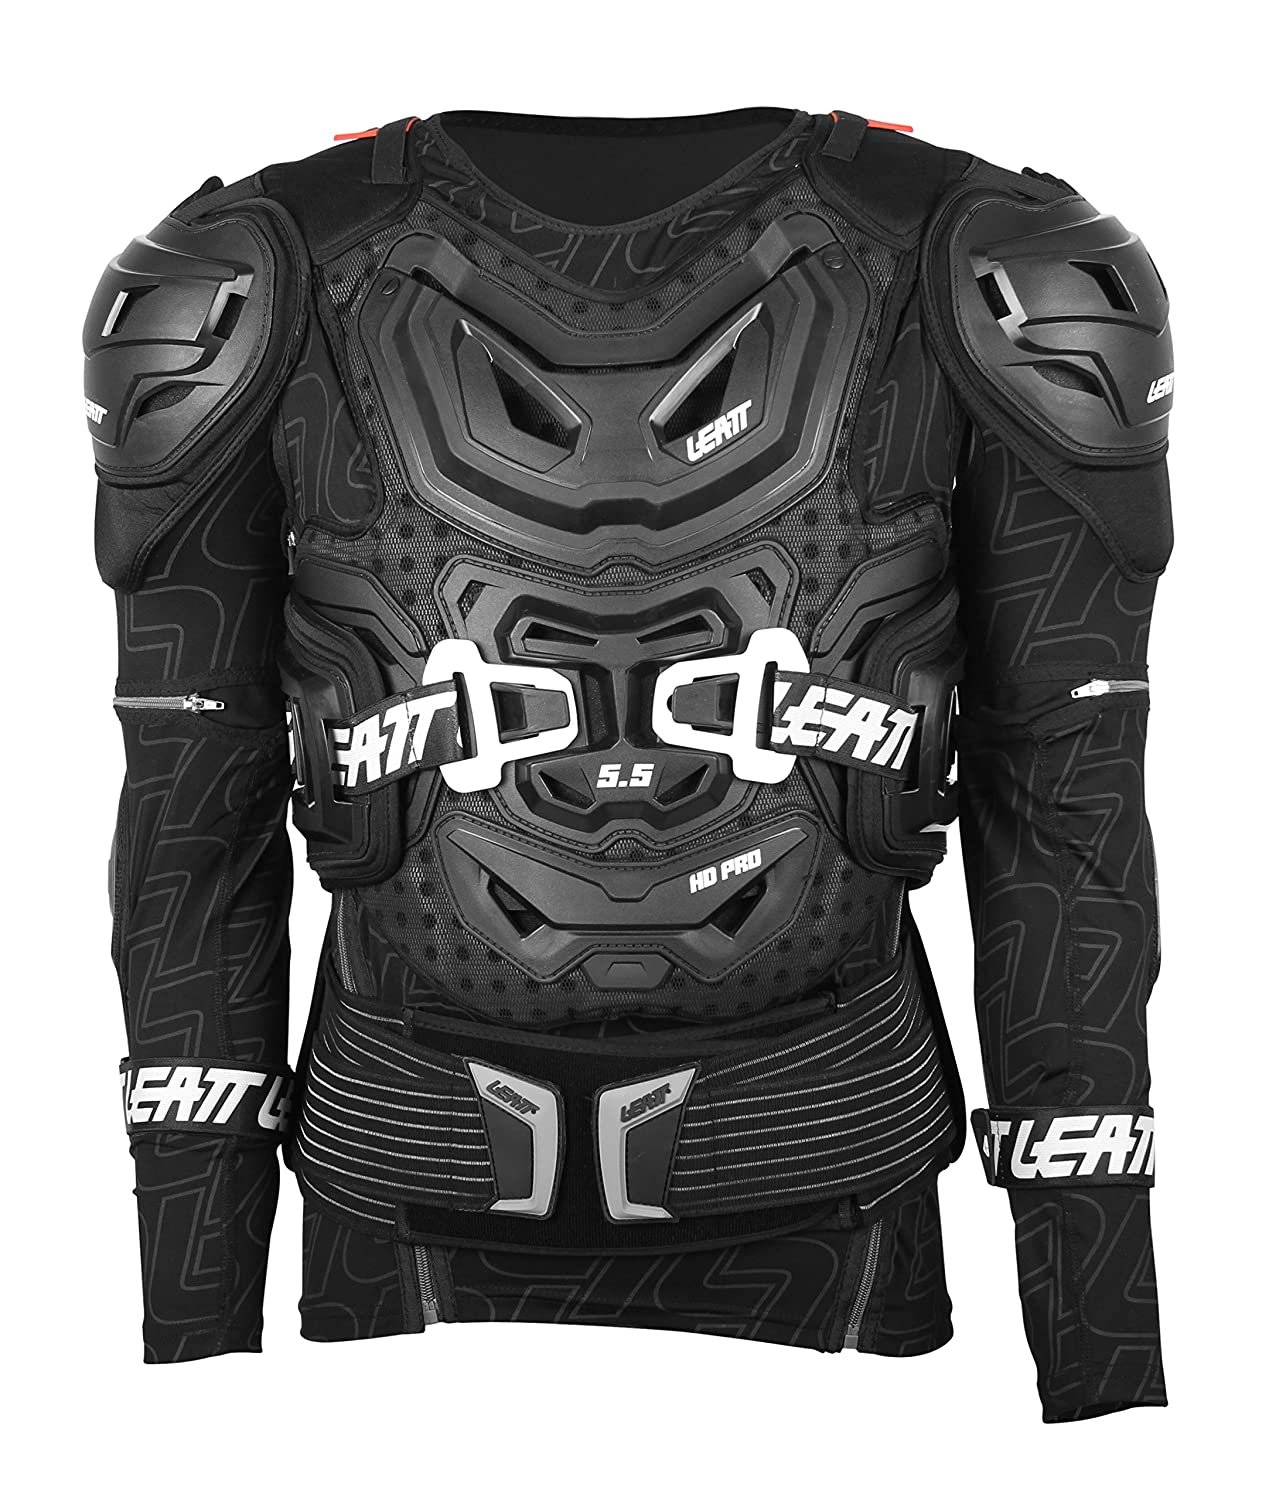 Leatt 5.5 Body Protector White, XX-Large